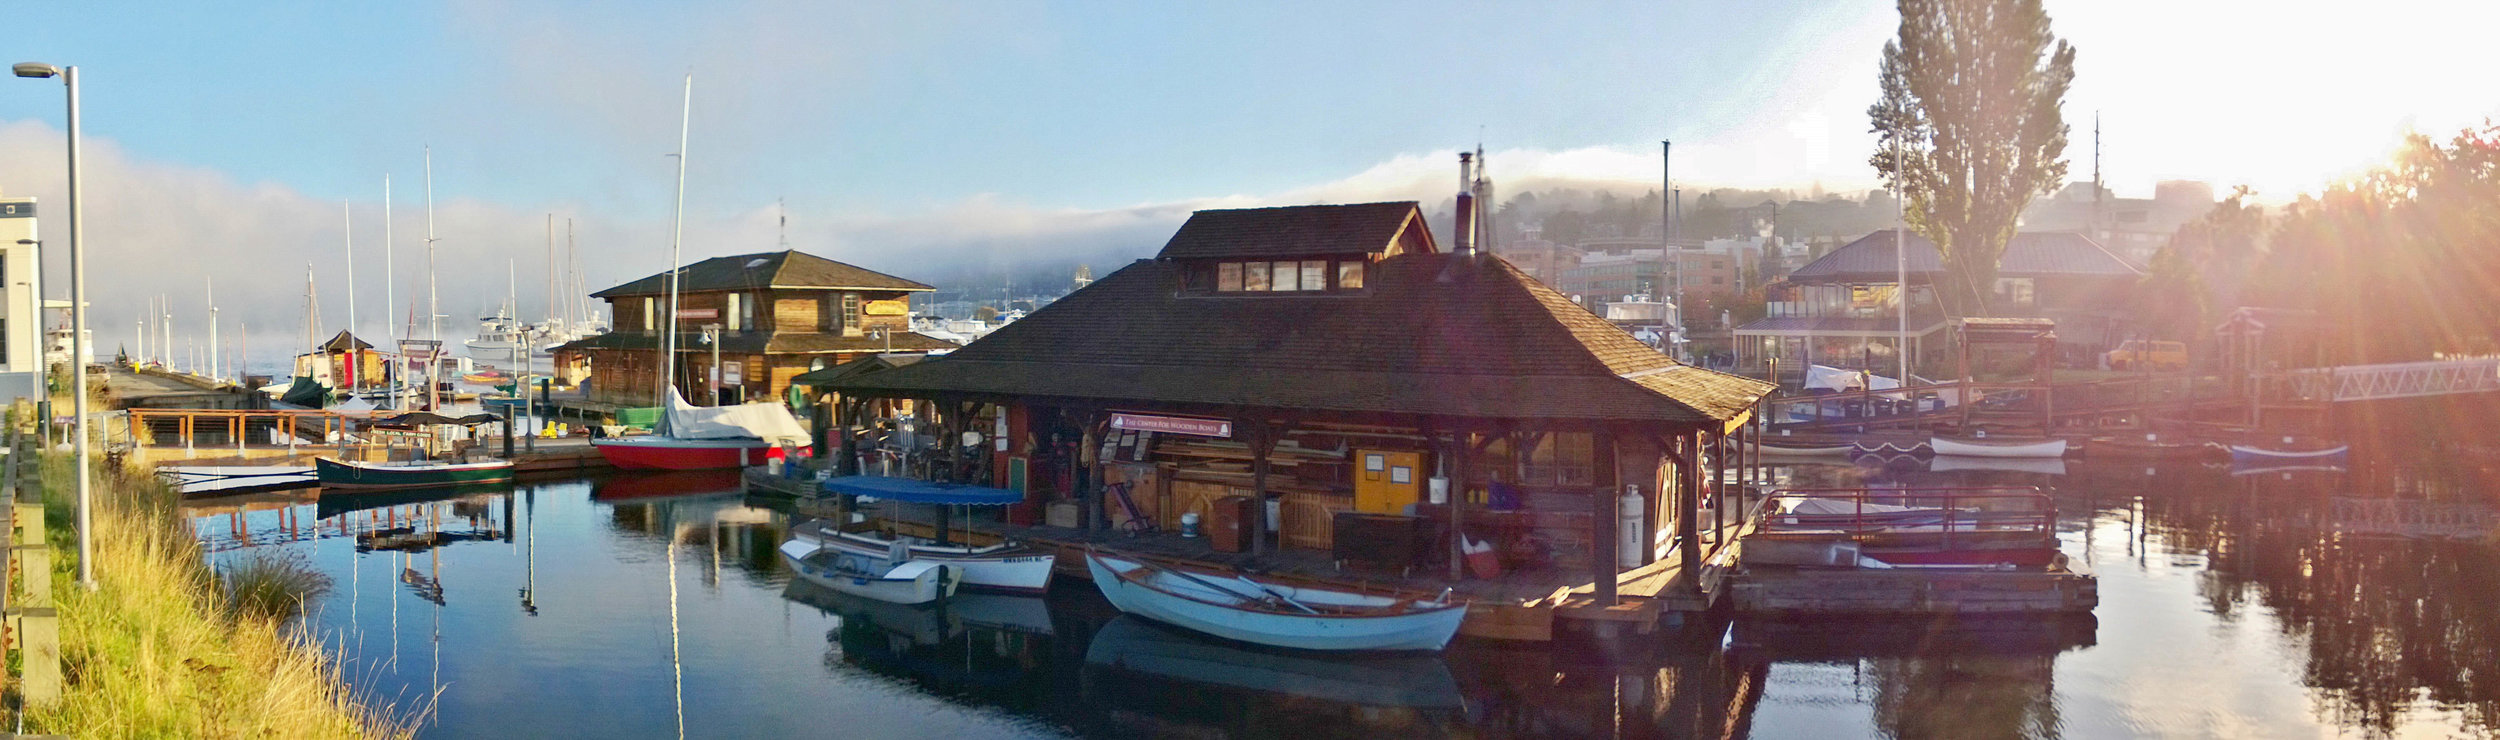 Panoramic View of the Original Boatshop and Boathouse